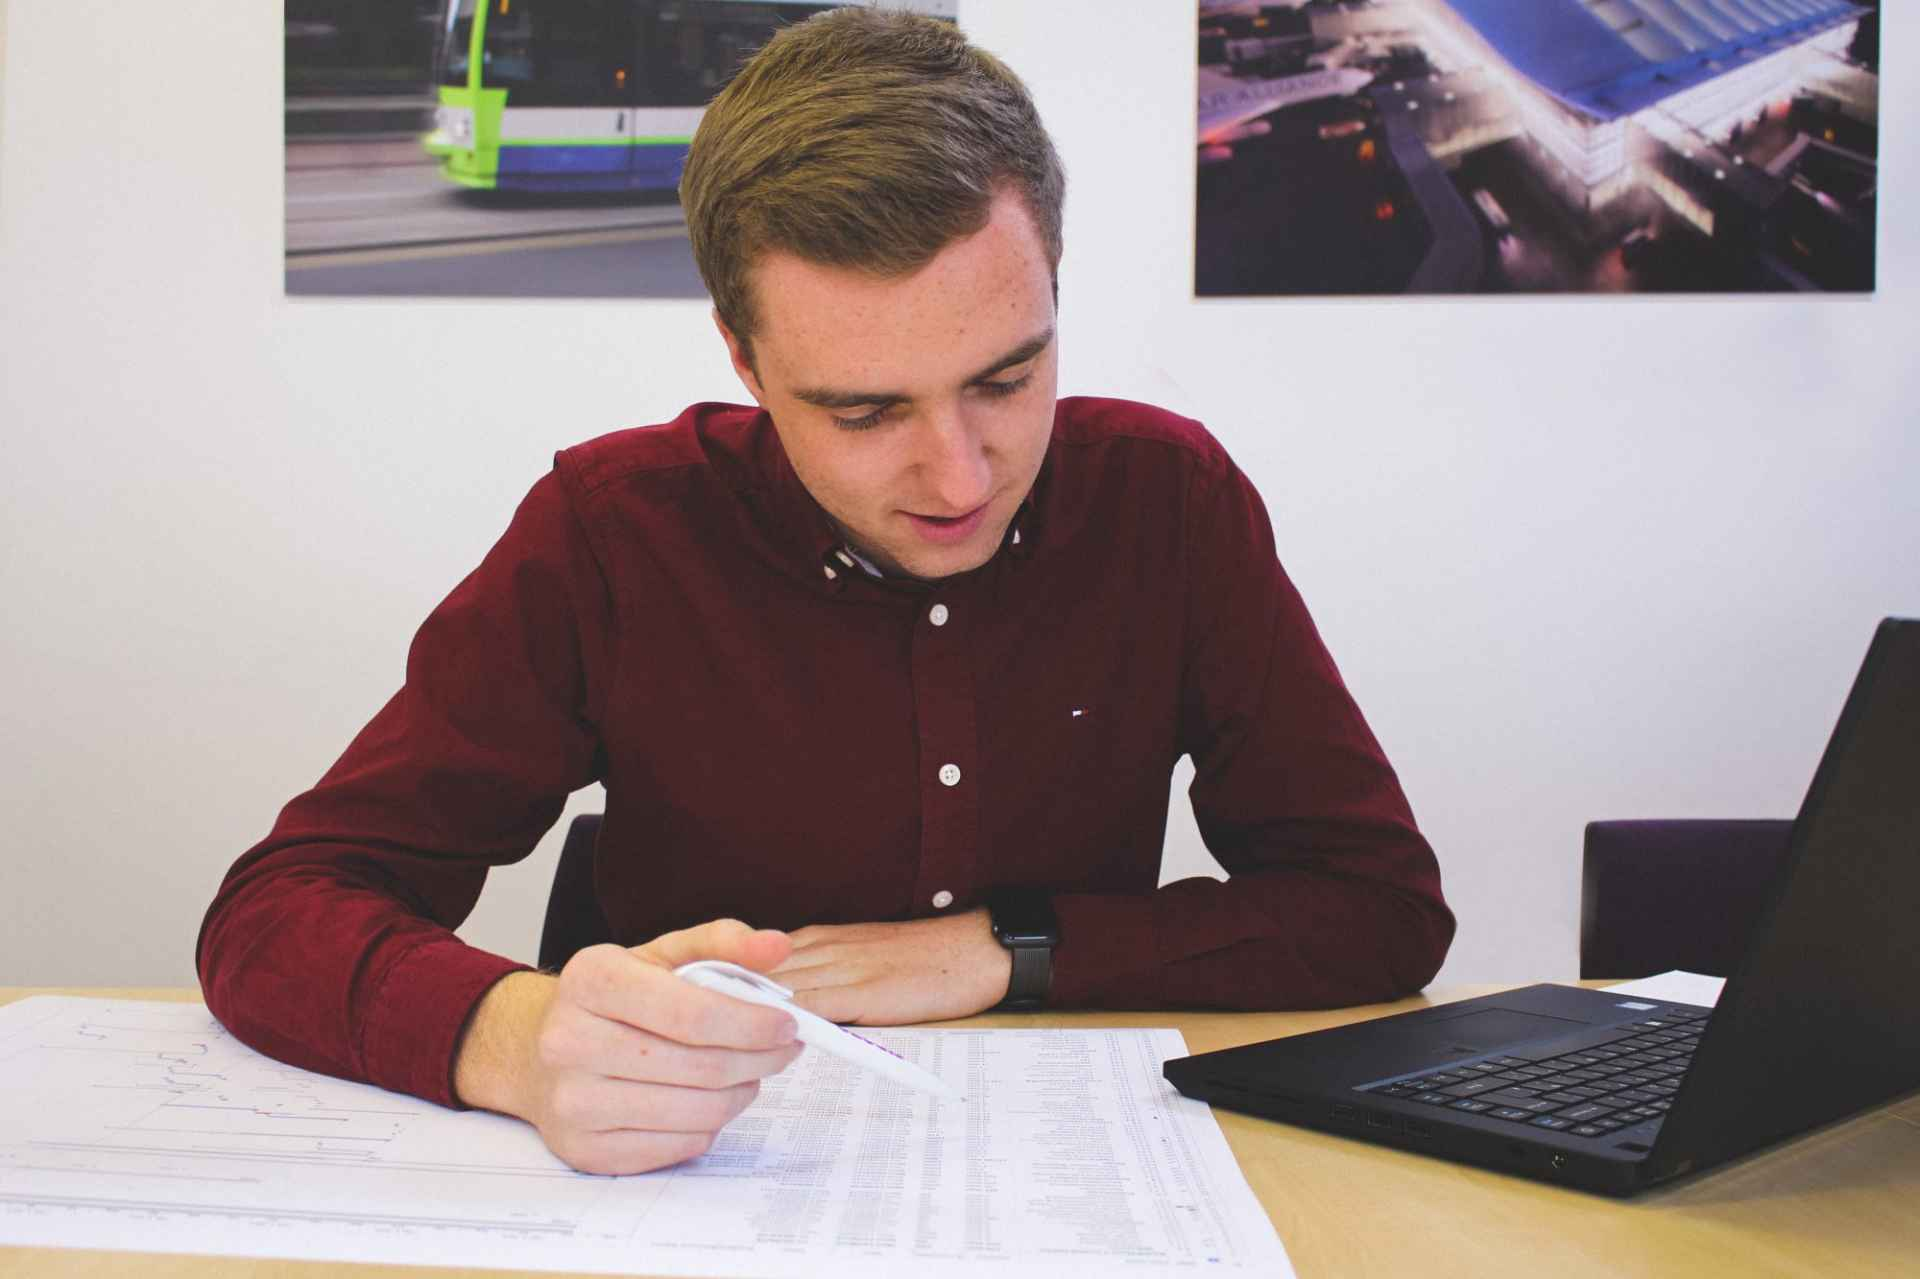 Meet Curtis – Professional Pathway Student